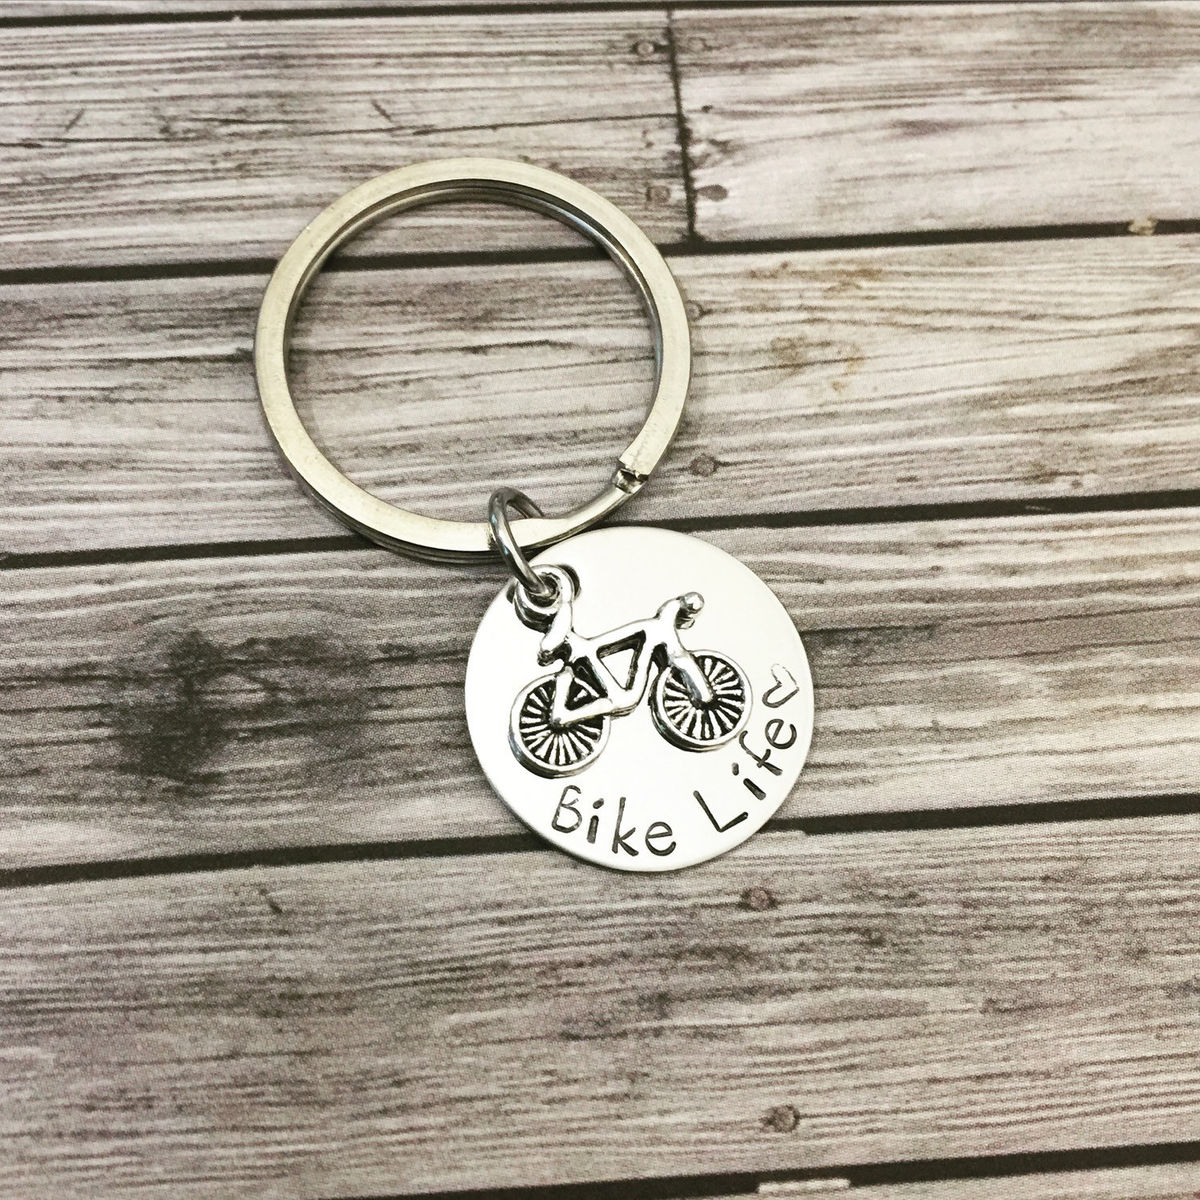 Bike Life Keychain, Bicycle charm keychain for active lifestyle - product image